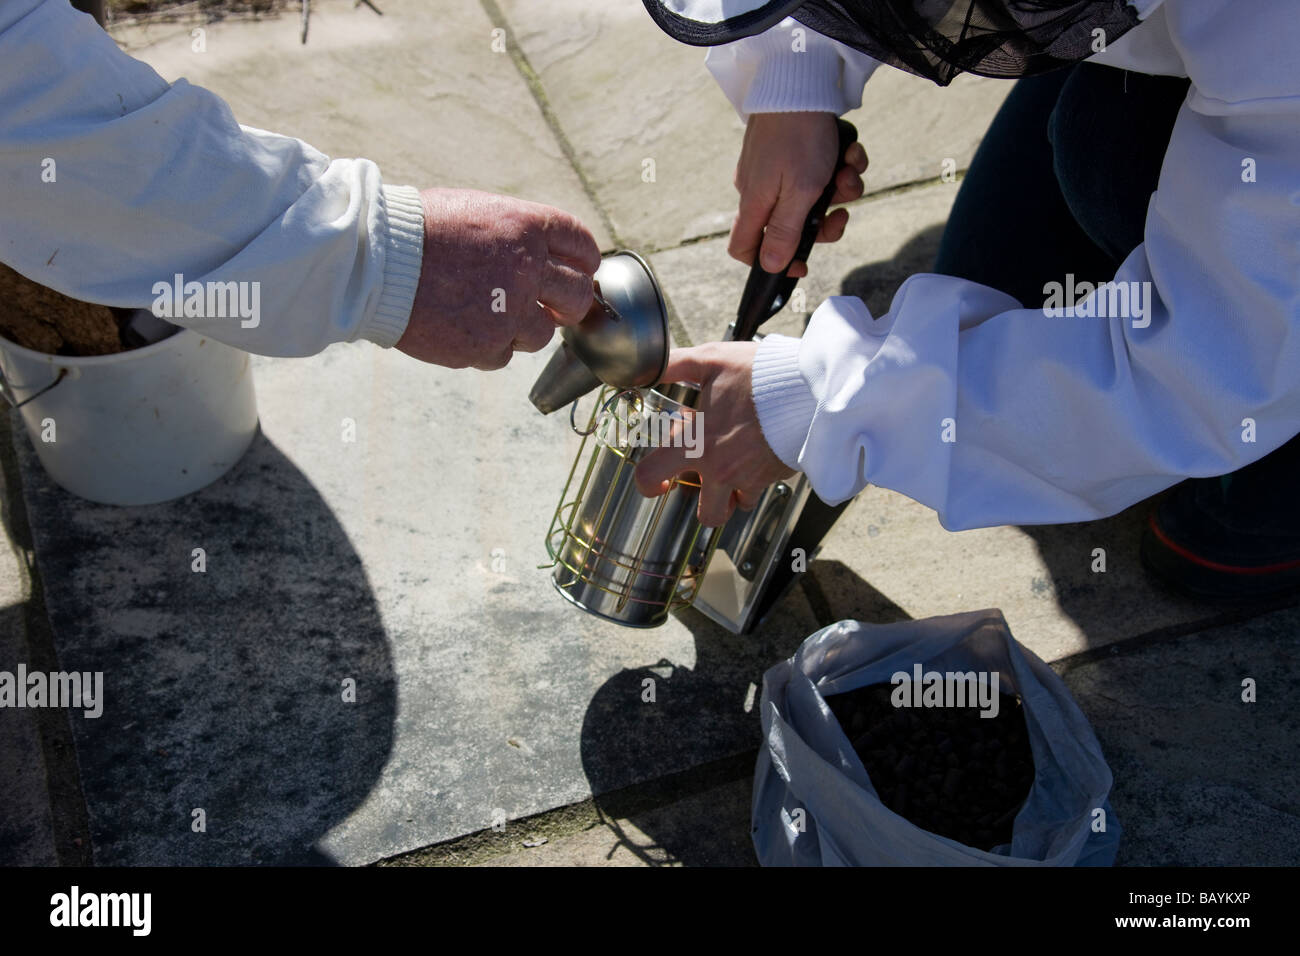 Lighting the smoker used to calm Bees, in preparation to inspect a bee hive. - Stock Image